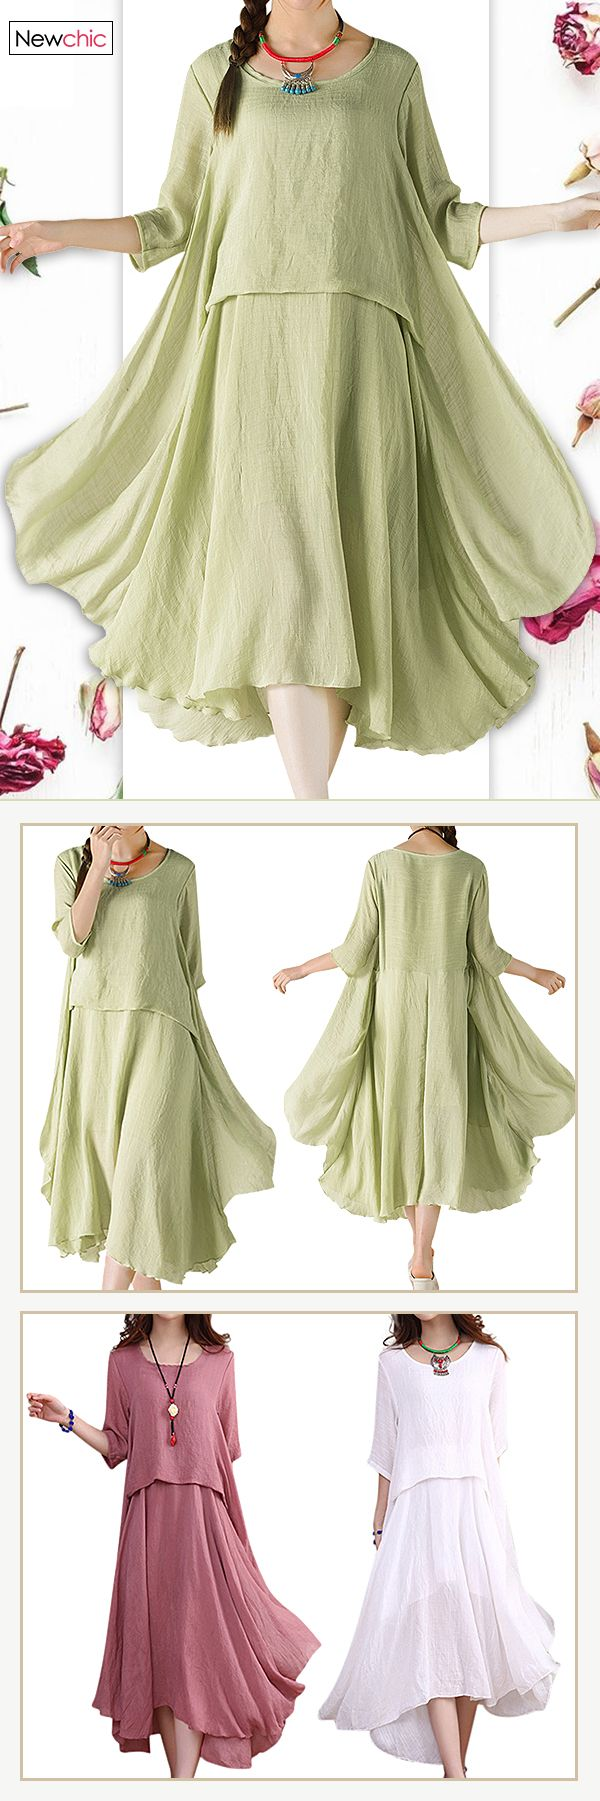 US$ 19.24 O-NEWE Elegant Solid 3/4 Sleeve Ruffled Irregular Dress For Women